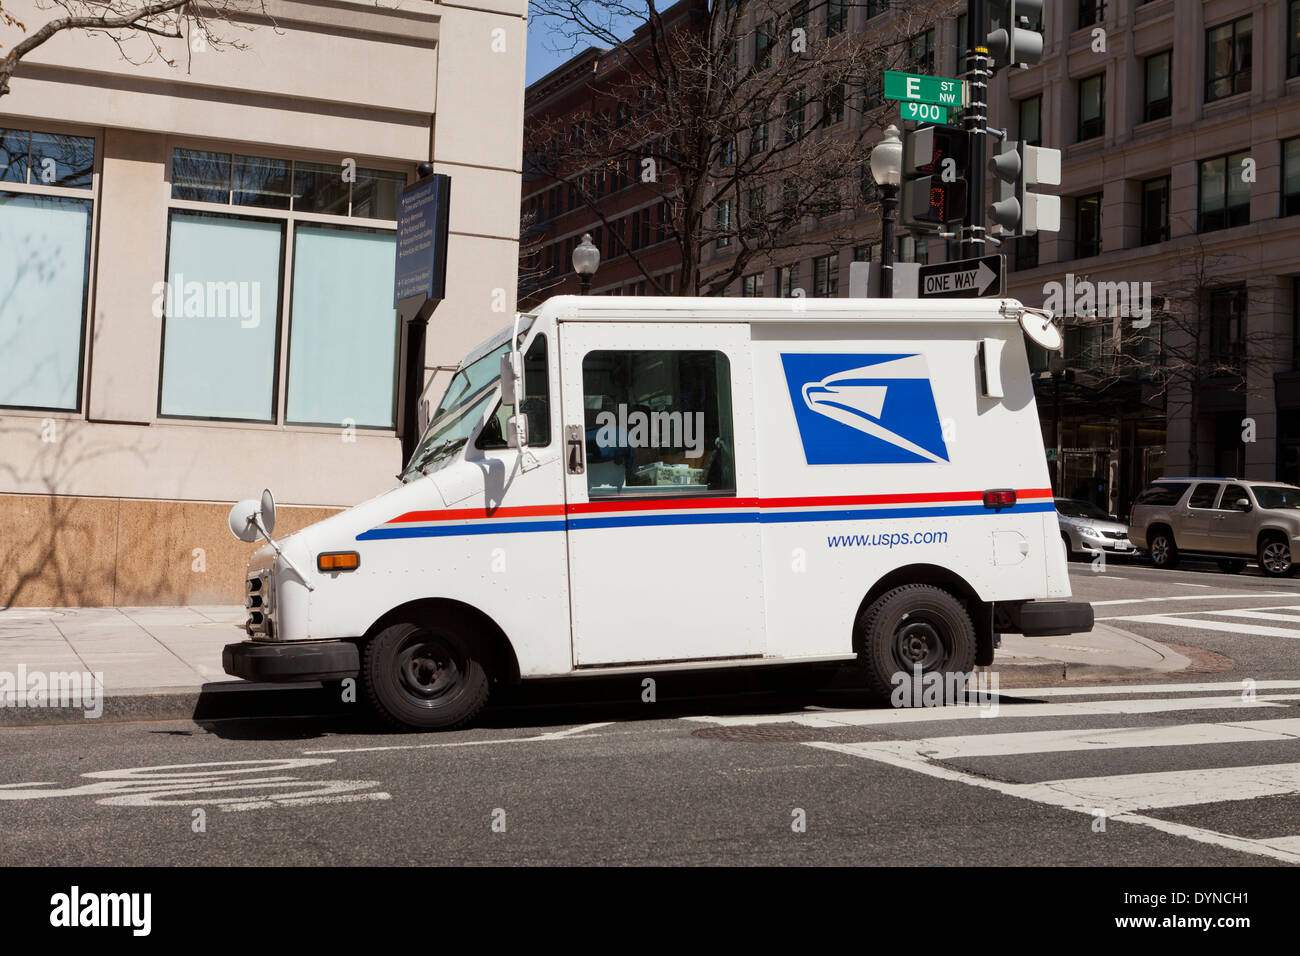 US Postal Service delivery truck - Washington, DC USA - Stock Image